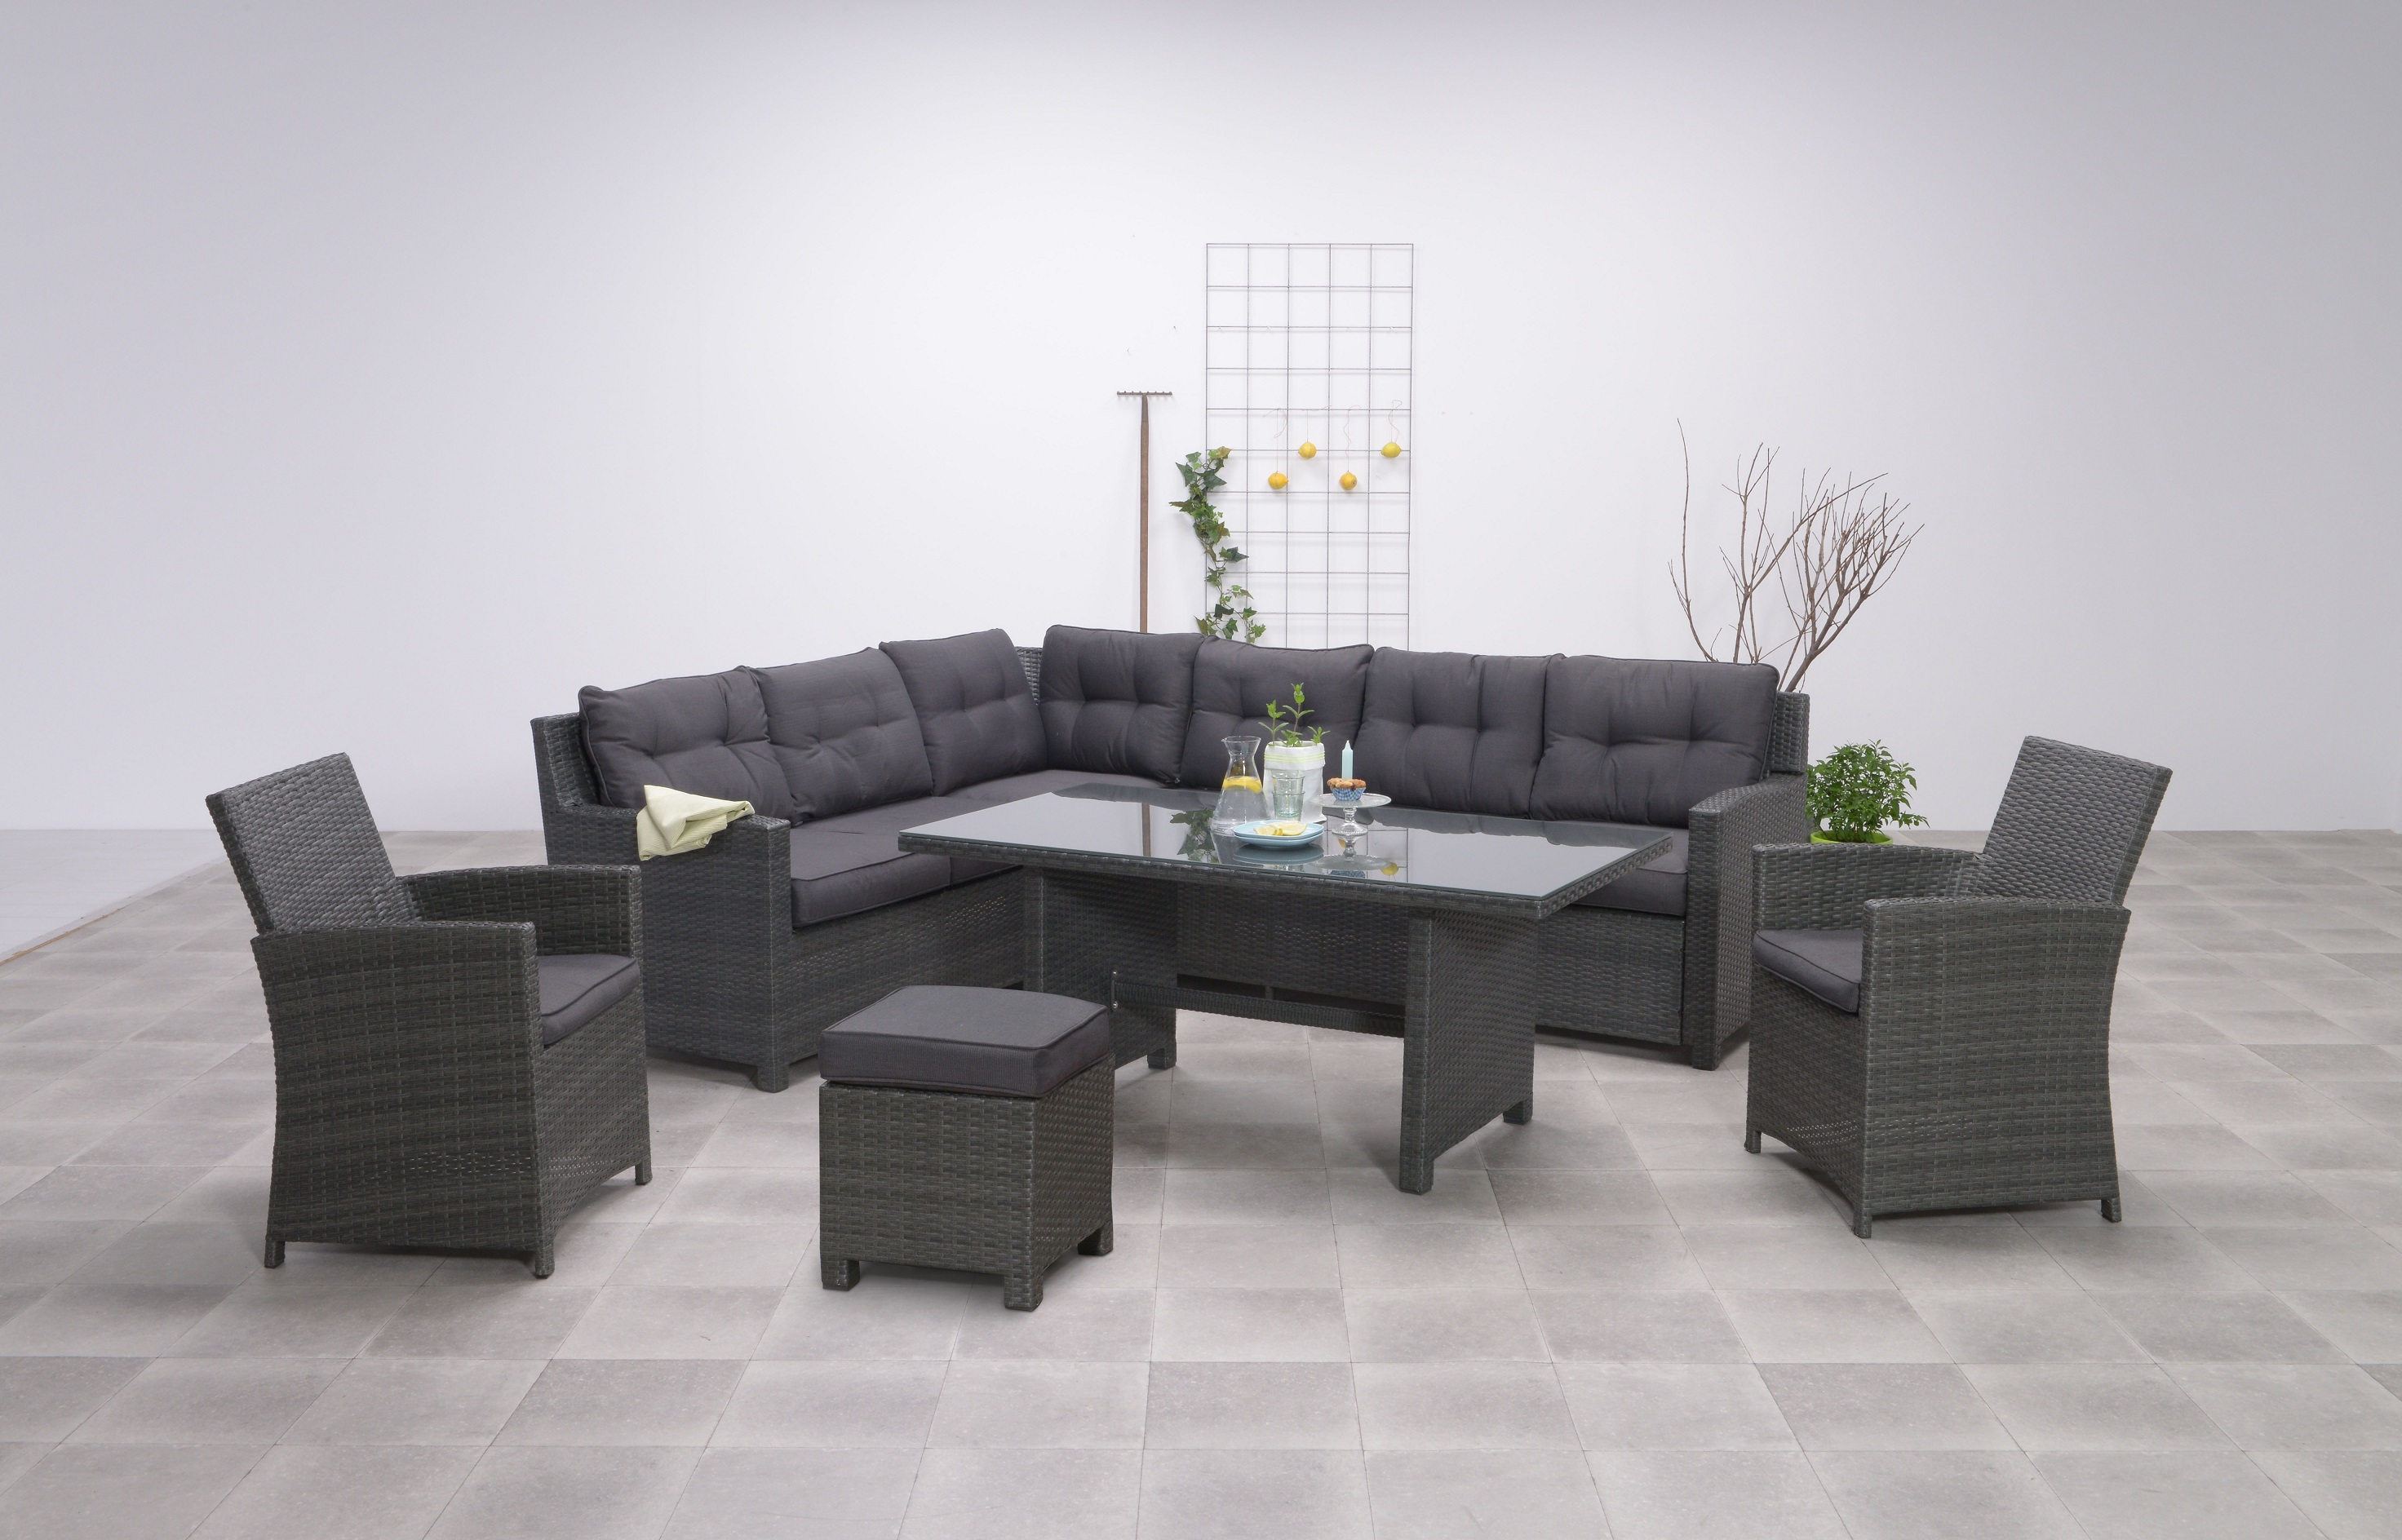 aboyne polyrattan ecklounge gartenm bel sitzgruppe grau lounge m bel garten. Black Bedroom Furniture Sets. Home Design Ideas